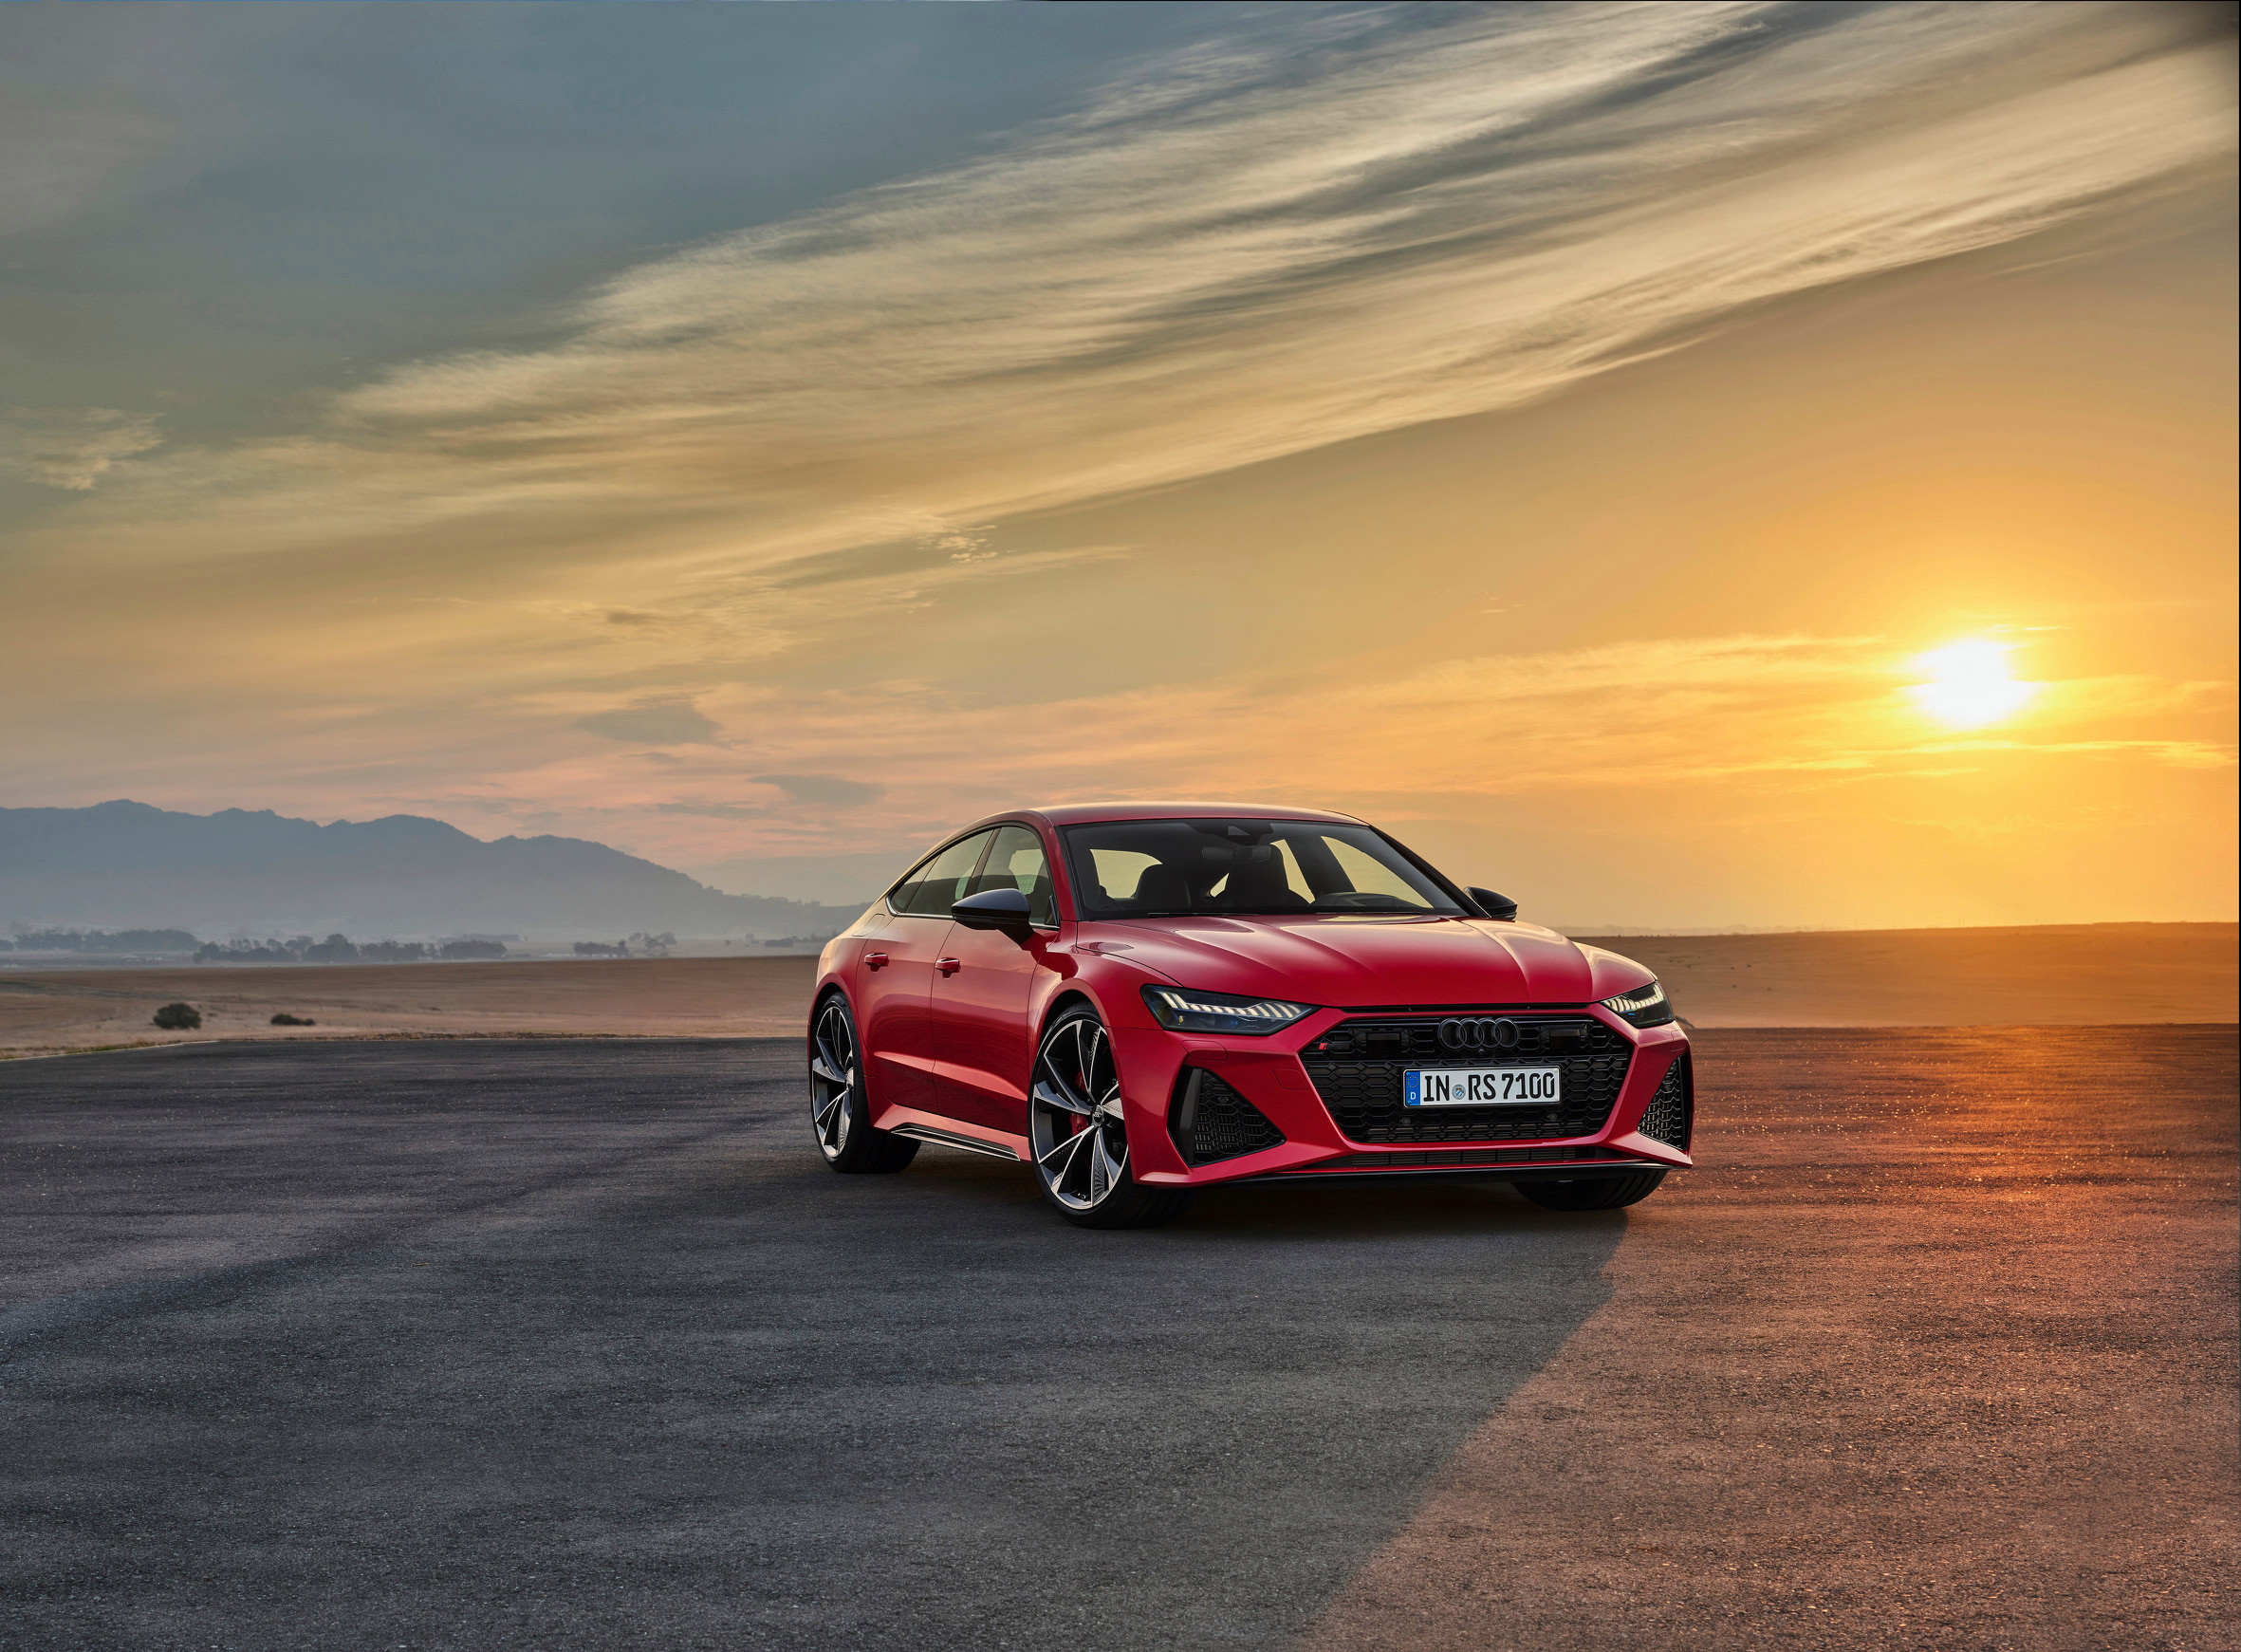 Audi's RS7 is a powerful, practical, pseudo-coupe which packs a punch with a 4-litre twin turbo V8 engine and stunning looks